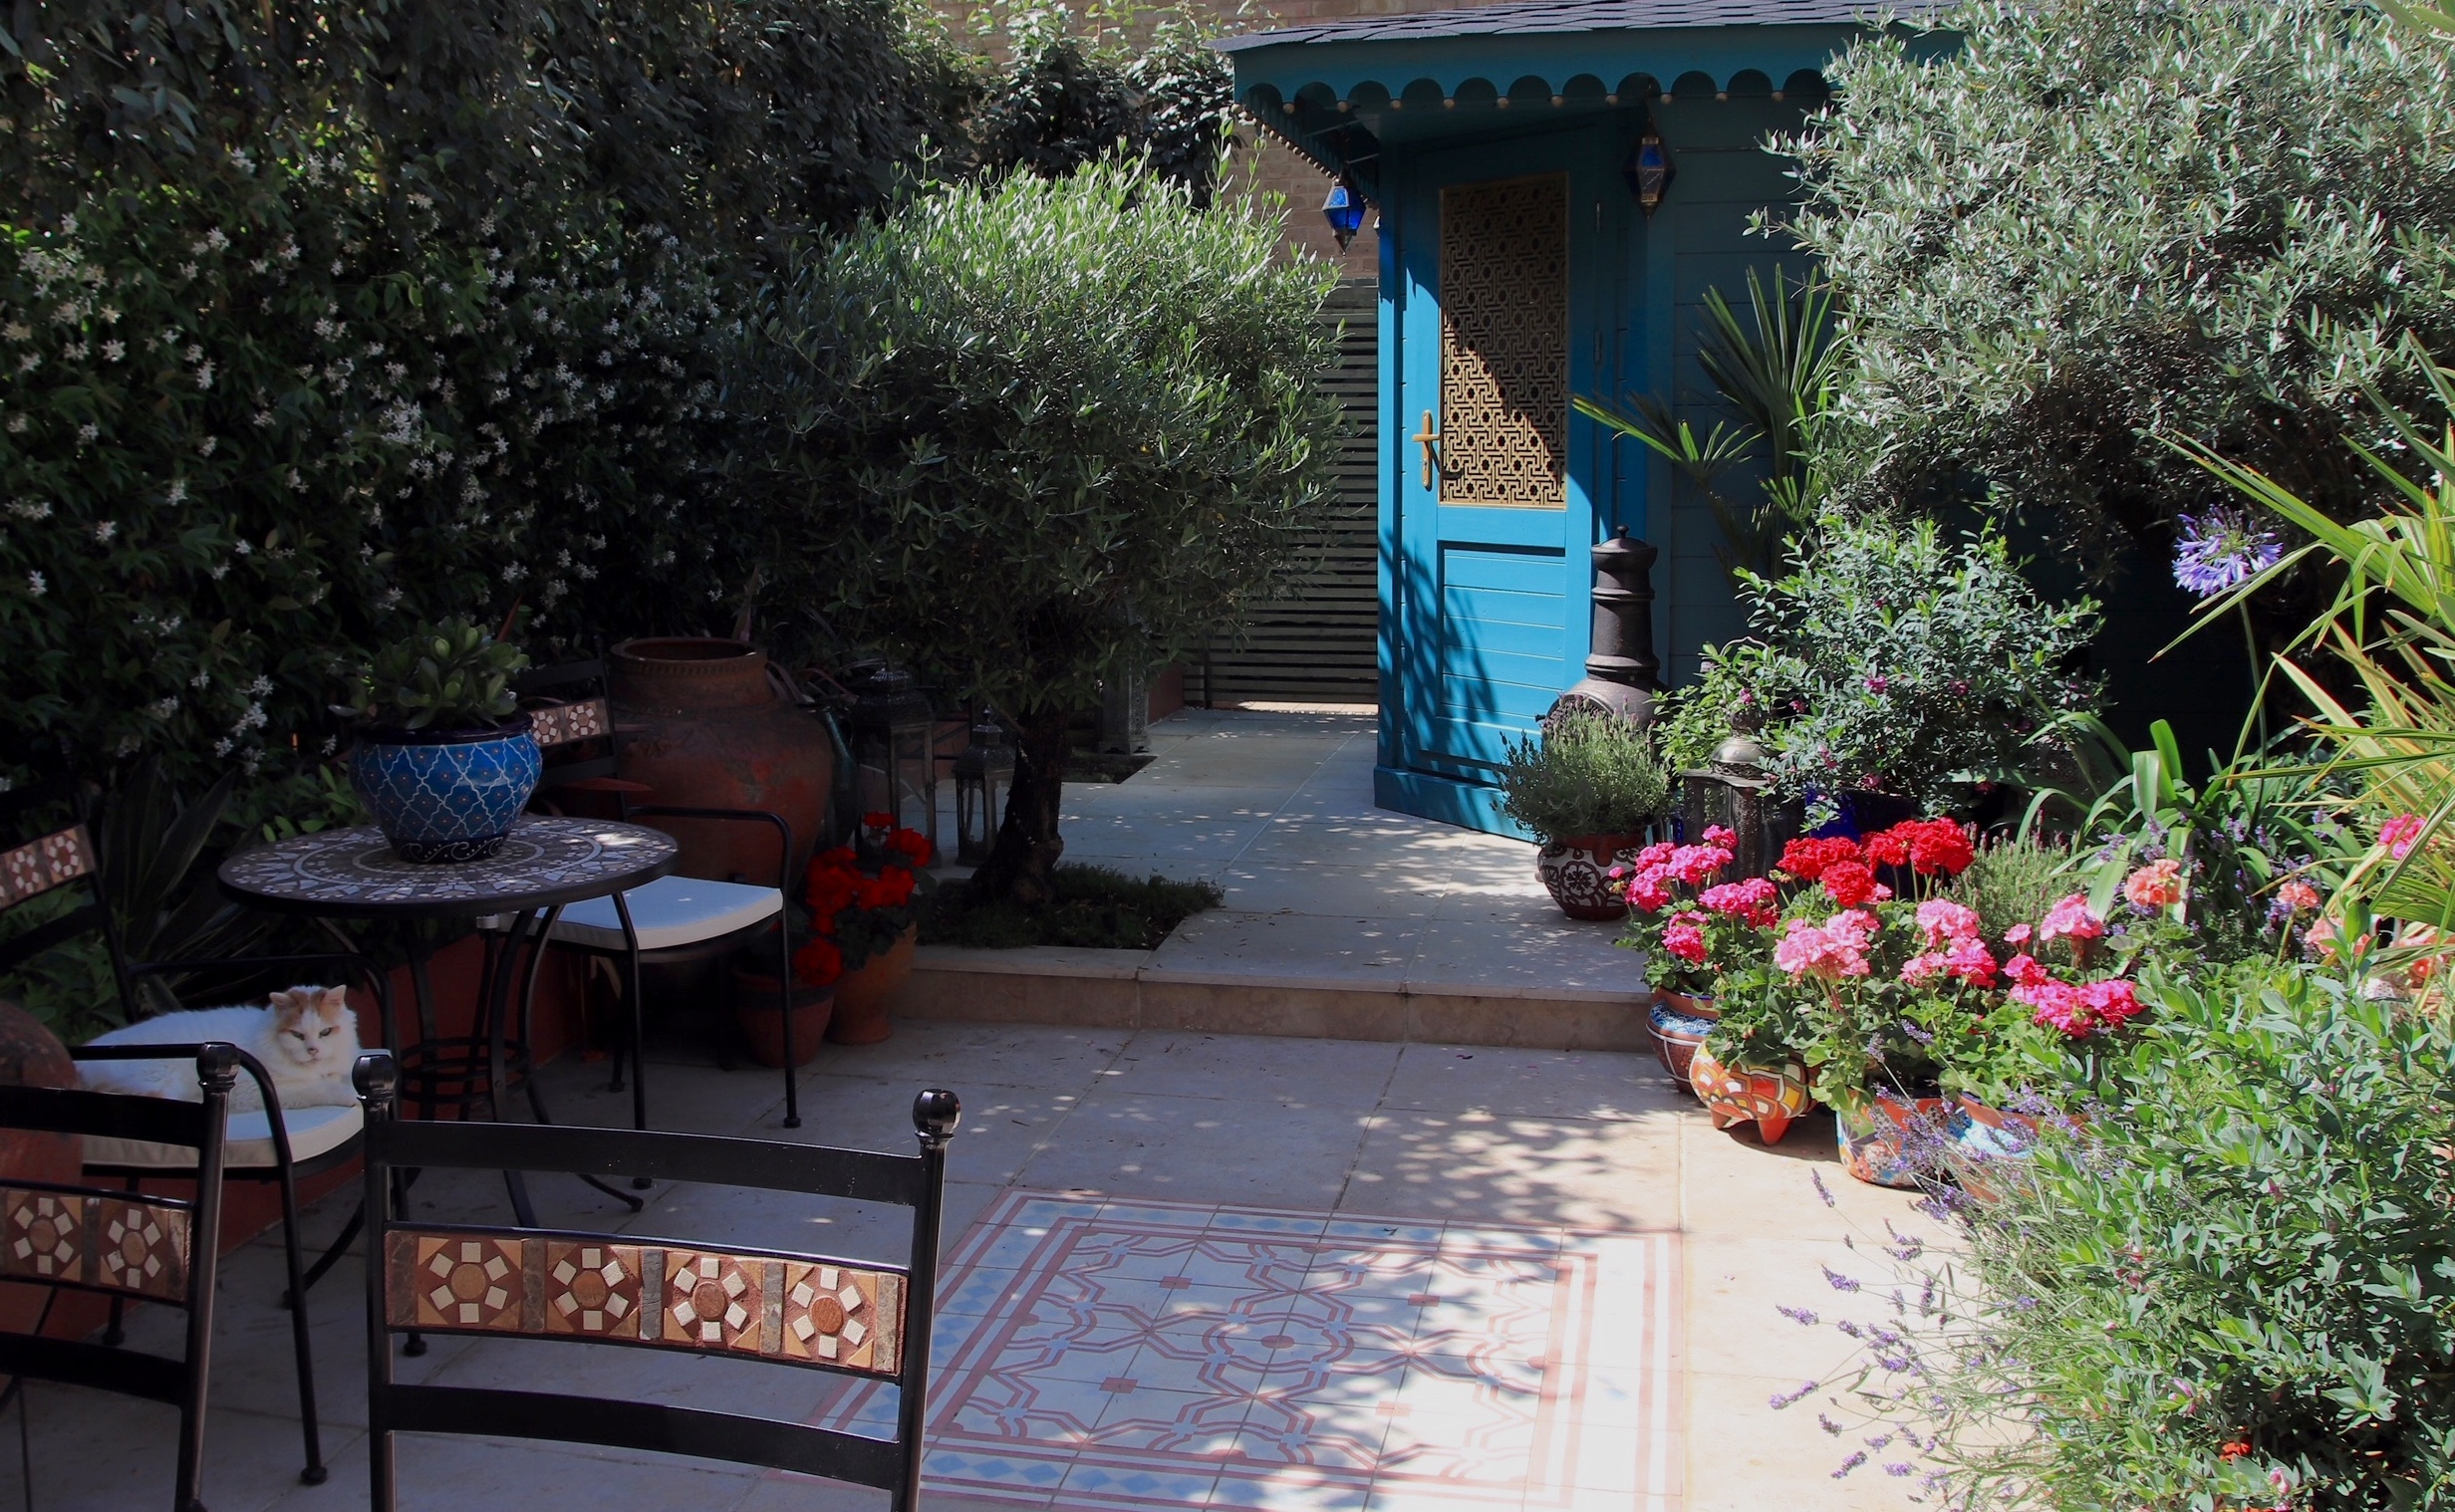 Award winning Moroccan Garden Design and Build.